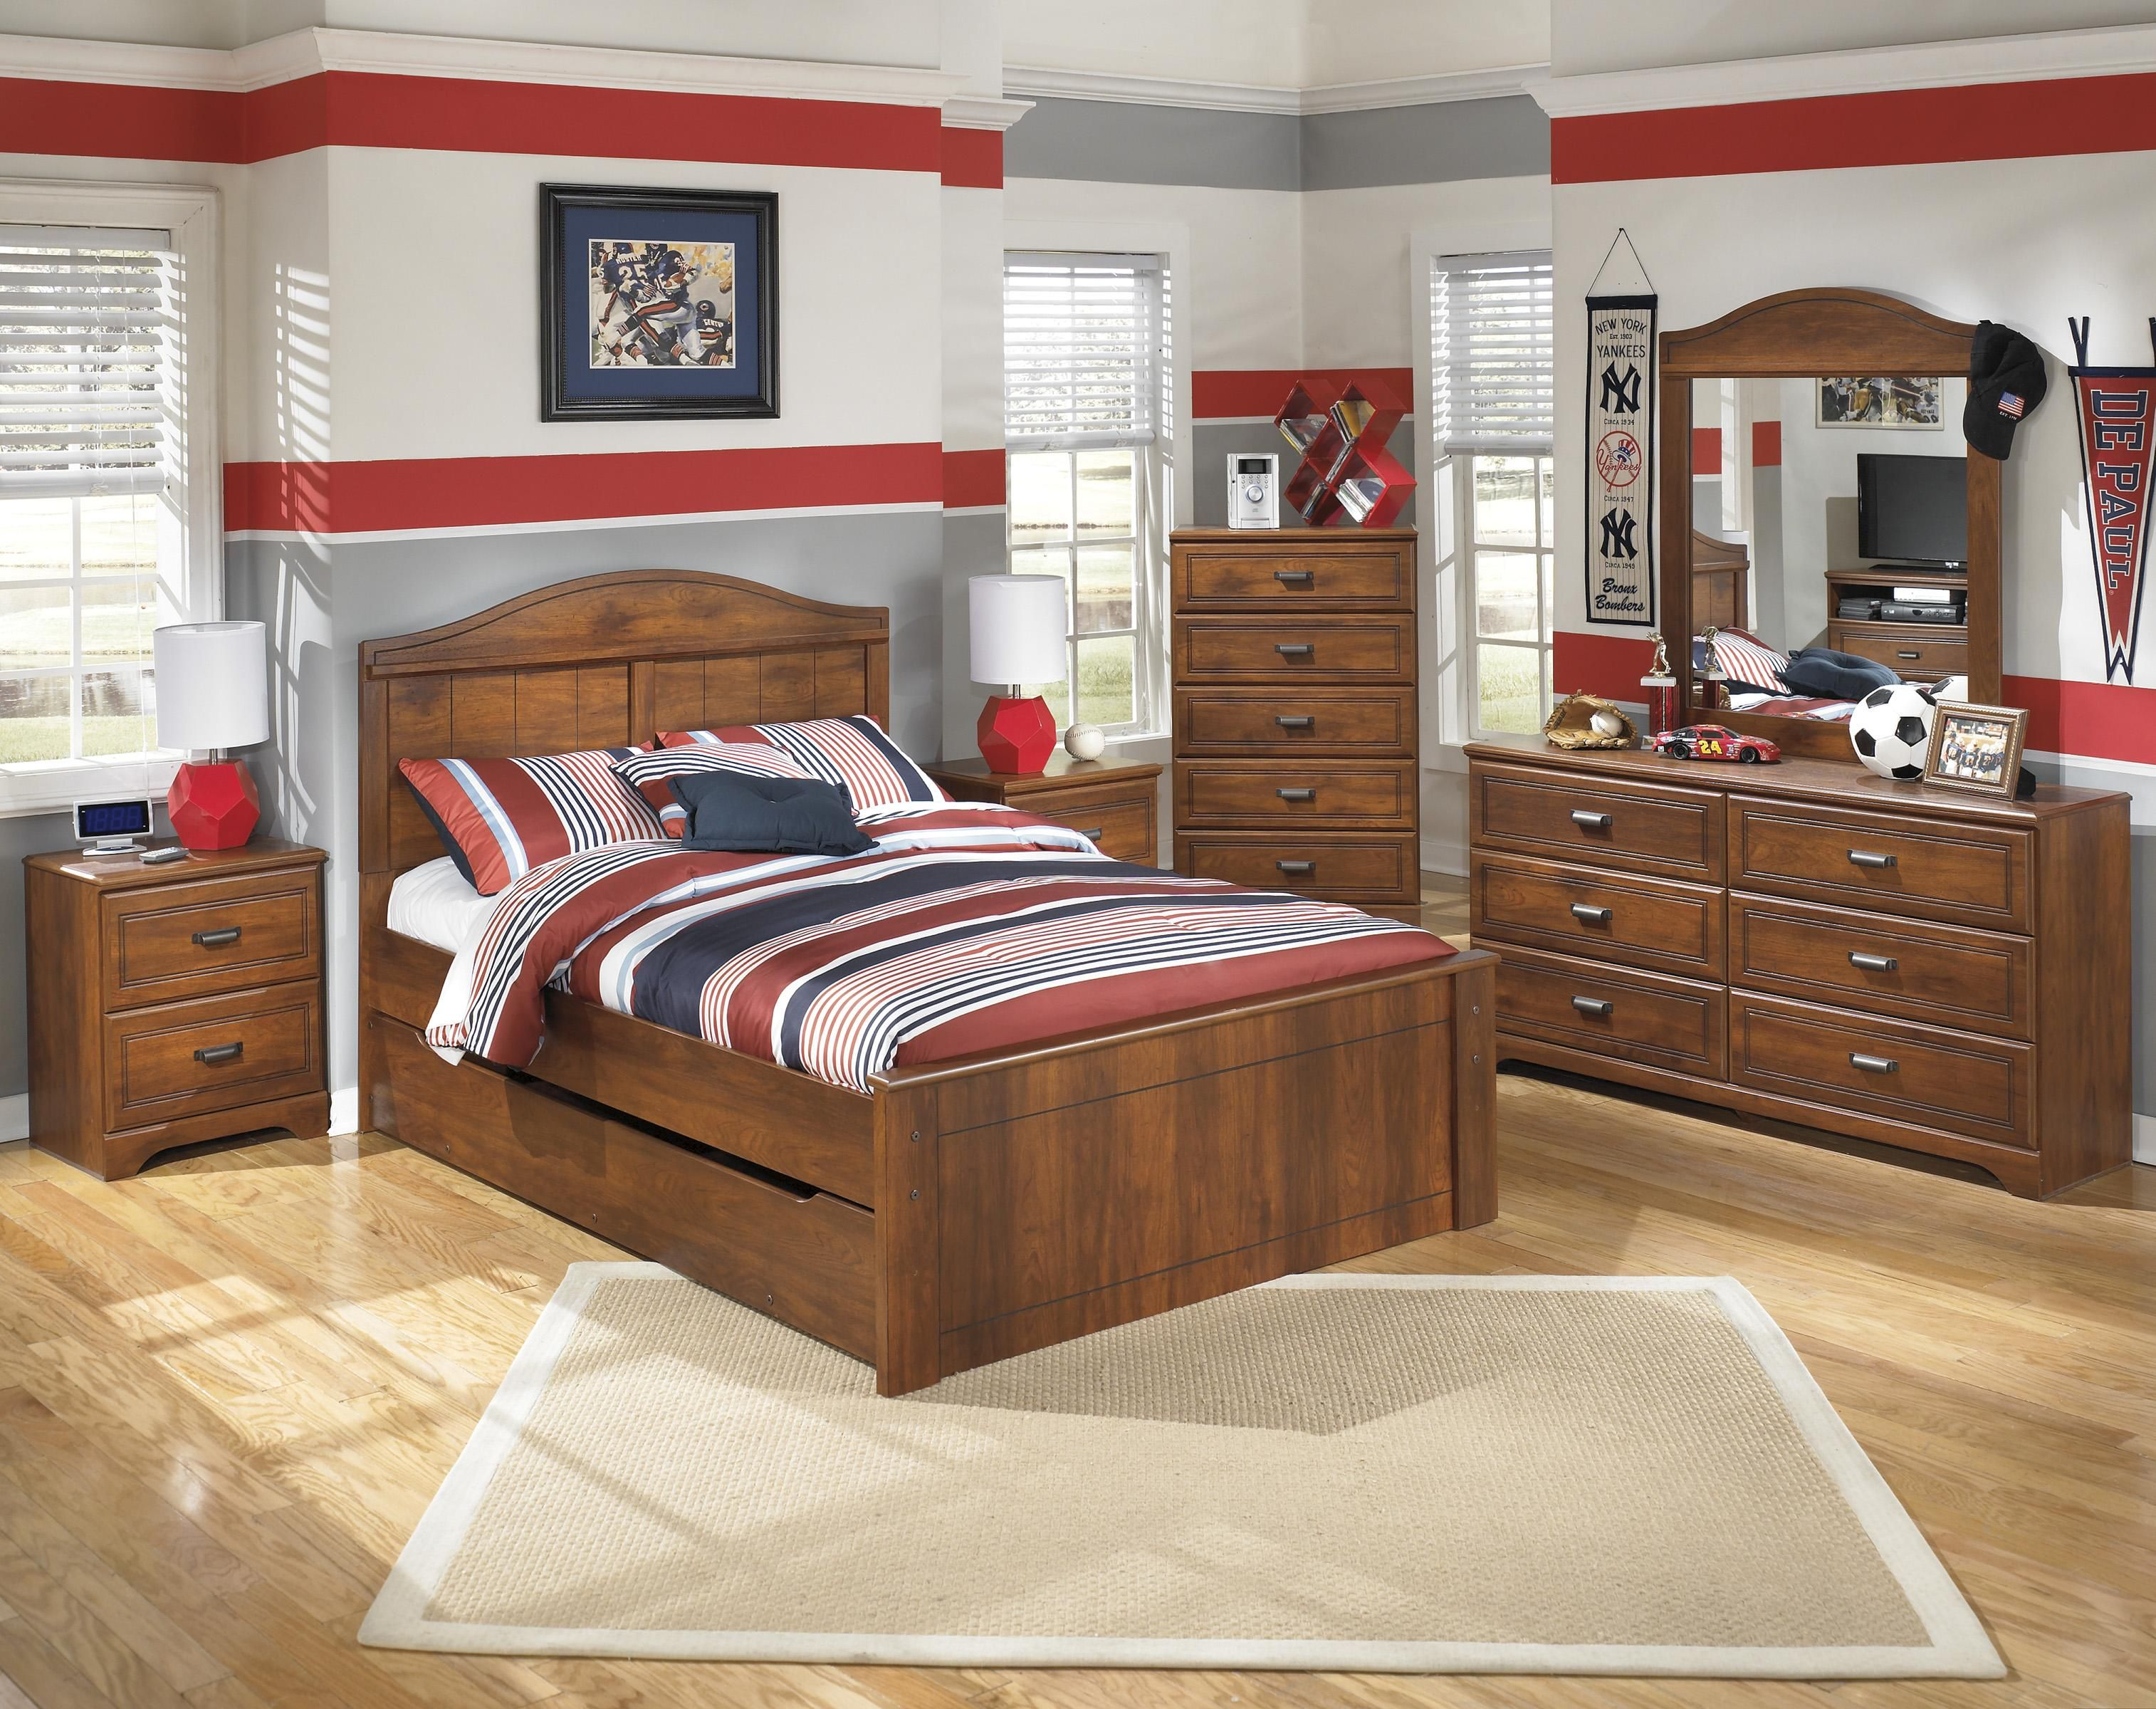 Pin by Beverly Yearwood on Decorating Bedroom sets, Kids